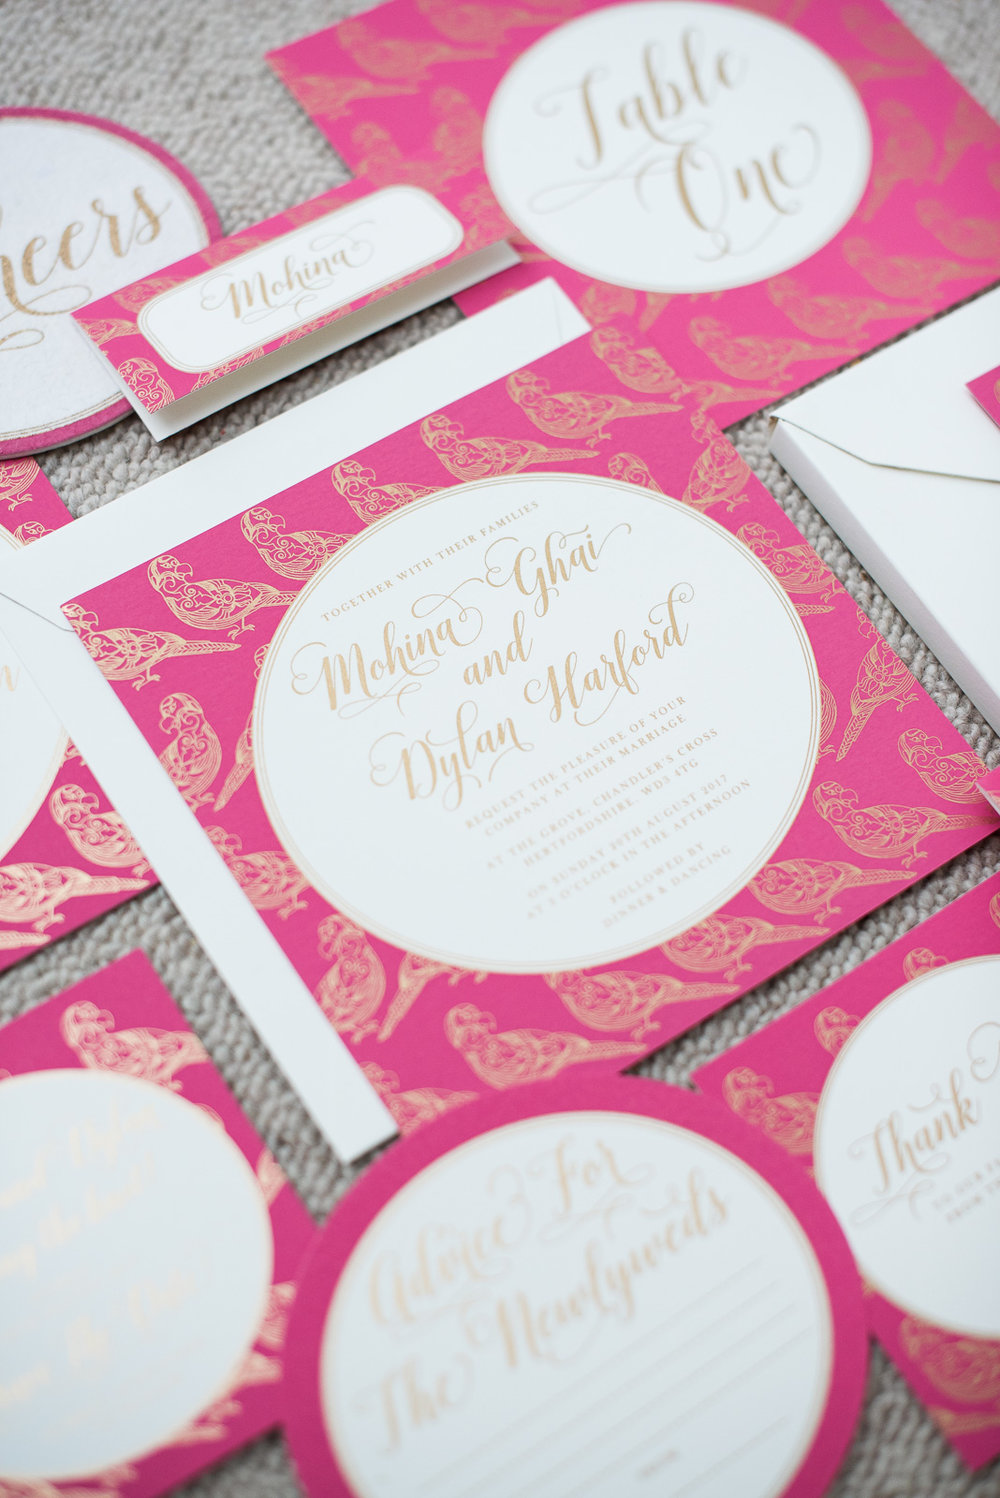 screenprinted bespokeweddingstationery2 ananyacards.com